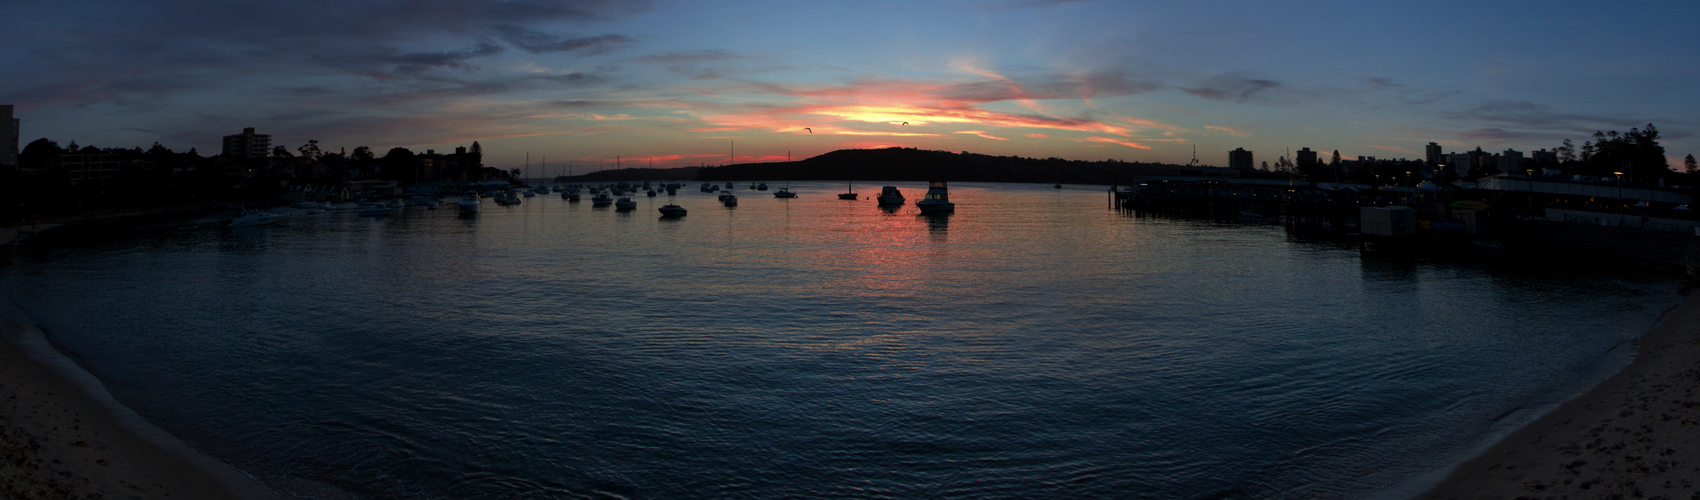 PANORAMA Sunset Manly